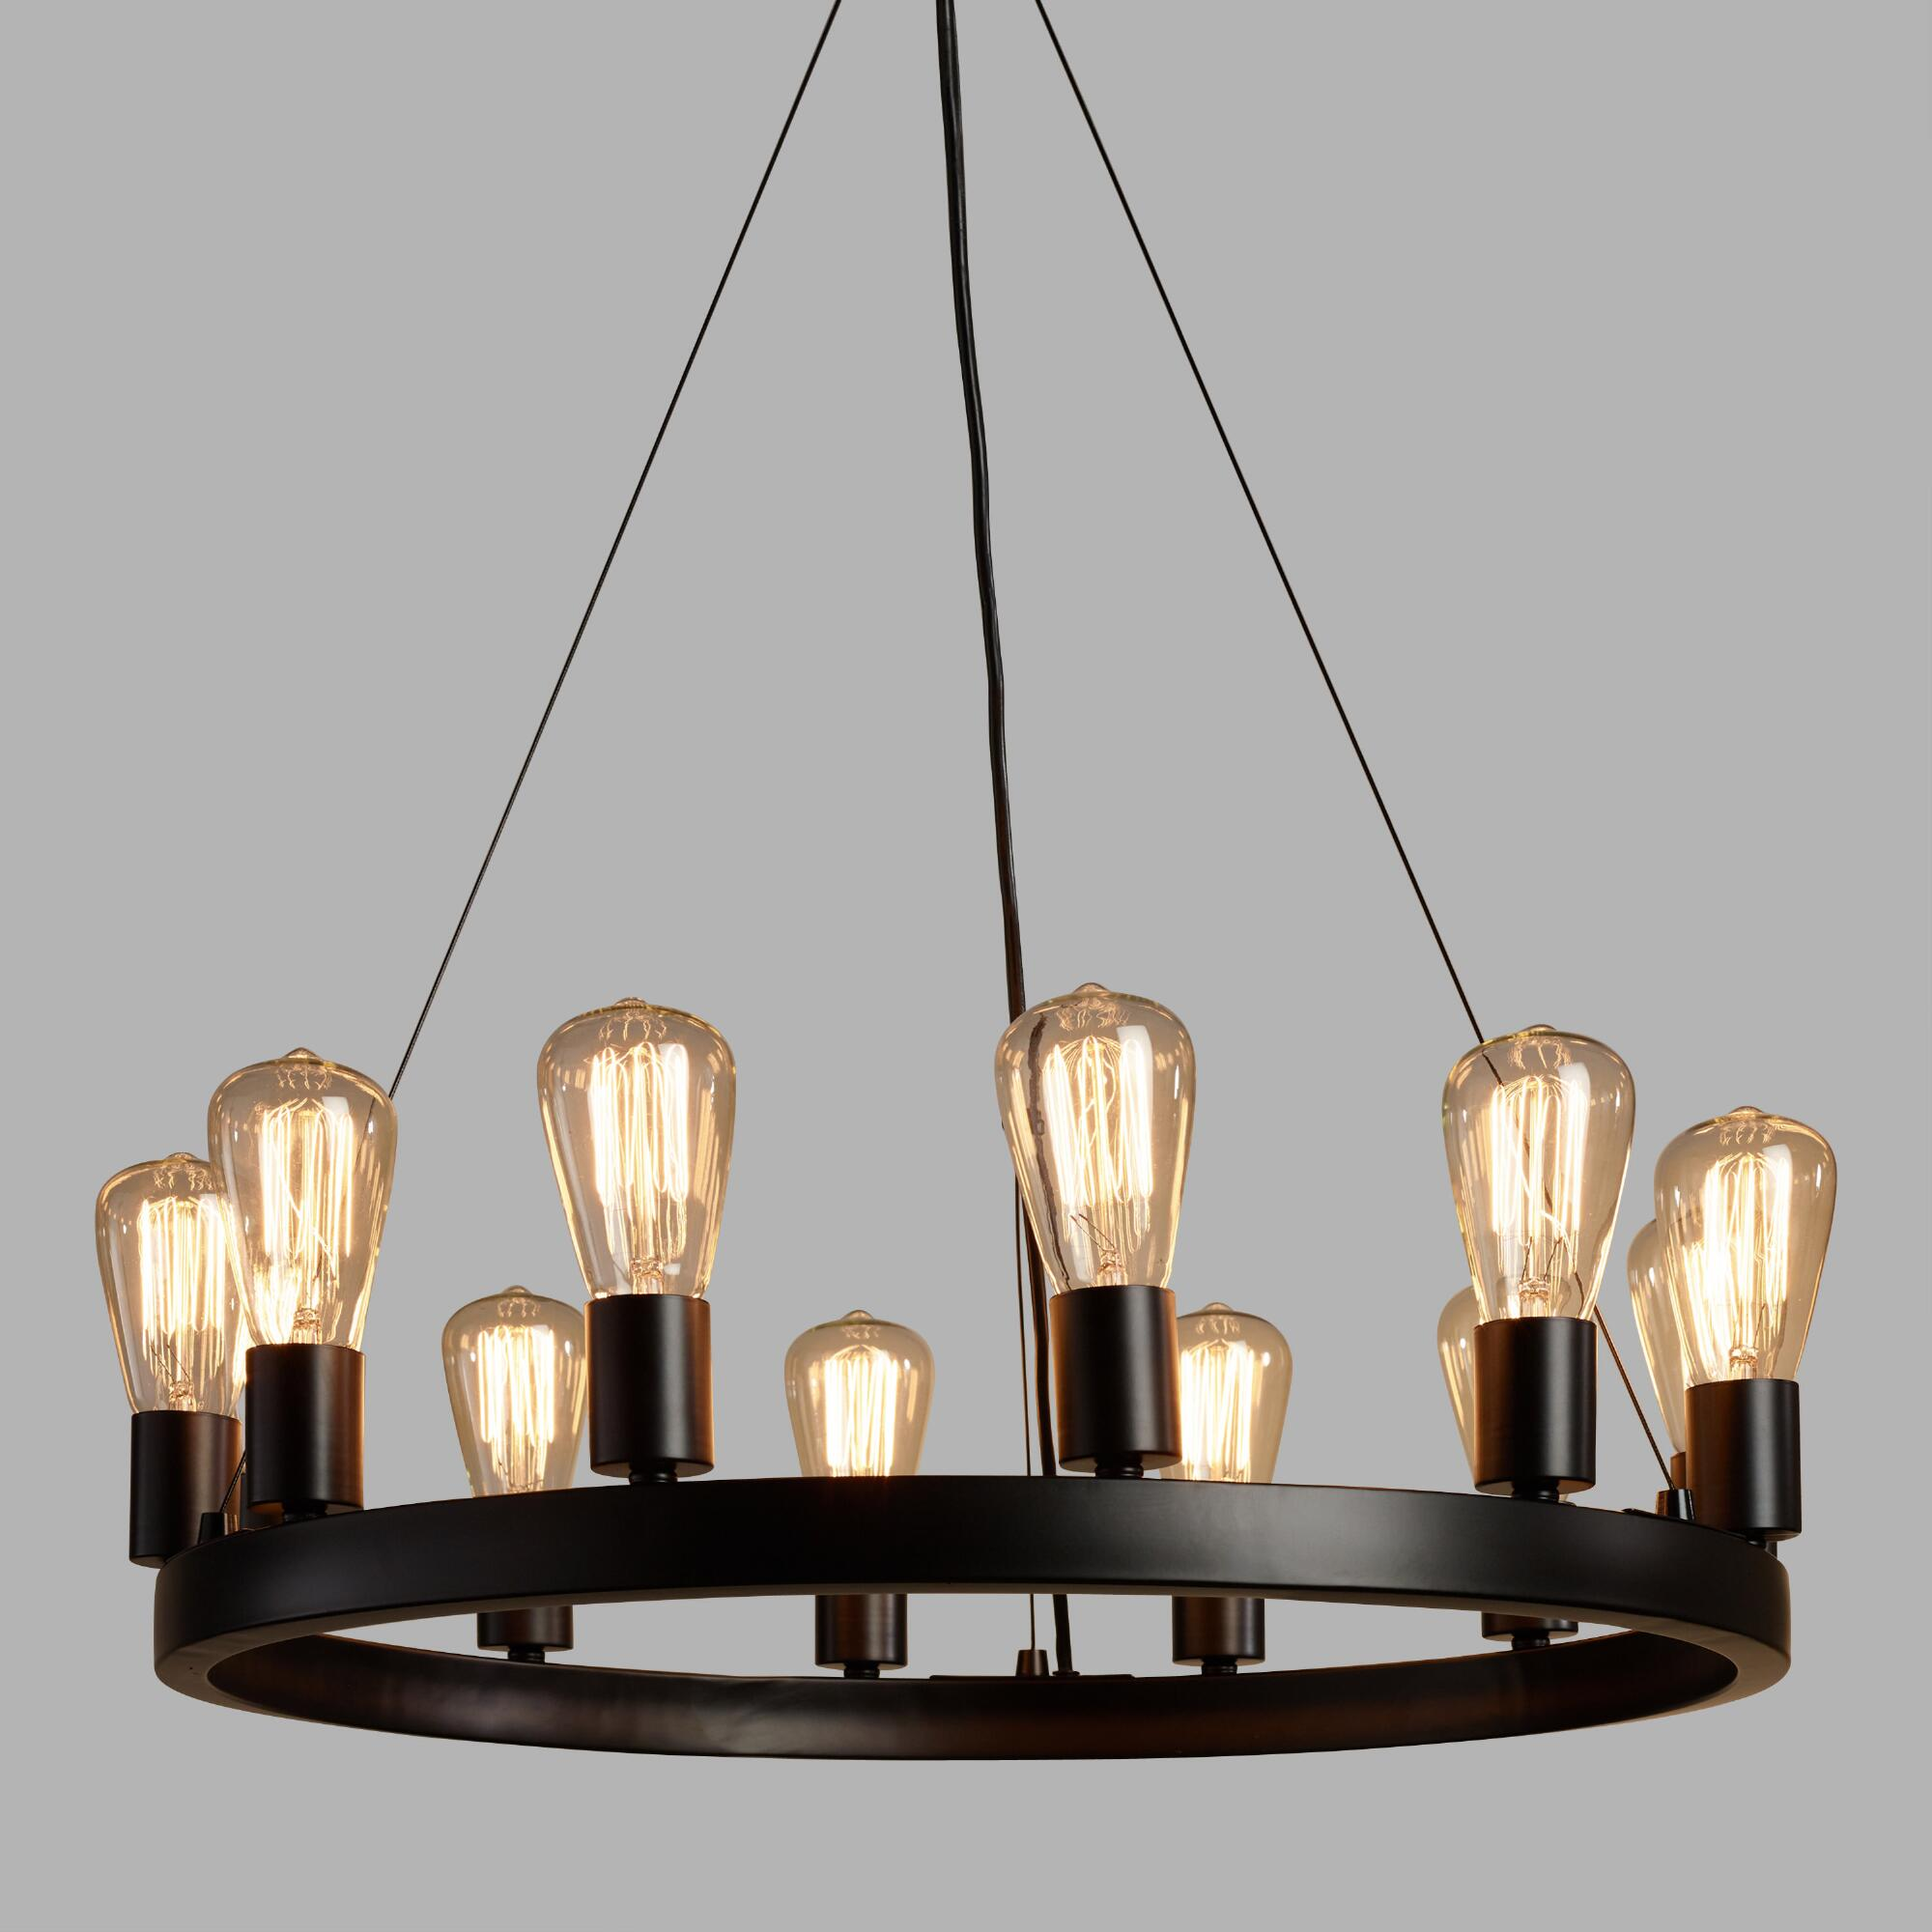 Pendant lighting light fixtures chandeliers world market round 12 light edison bulb chandelier arubaitofo Images